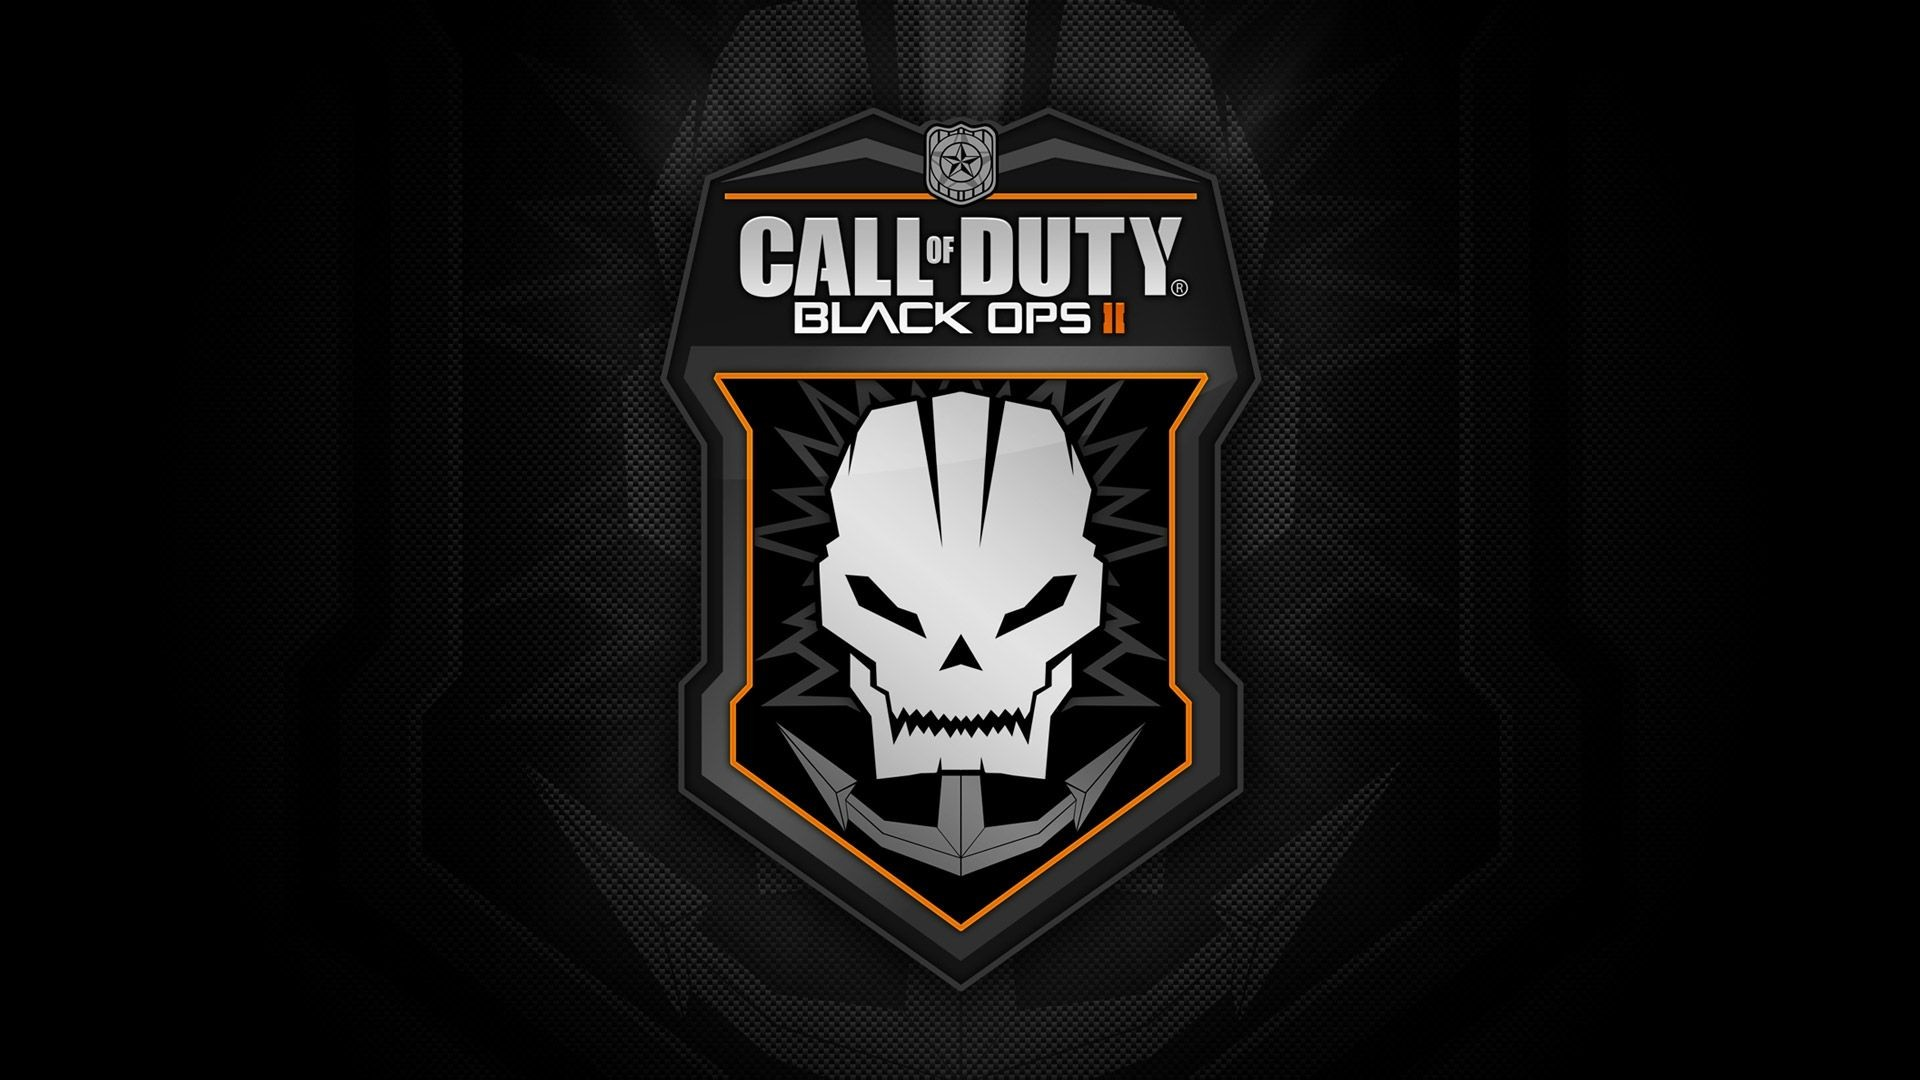 Call Of Duty Black Ops 3 Hd Wallpapers 92 Background Pictures